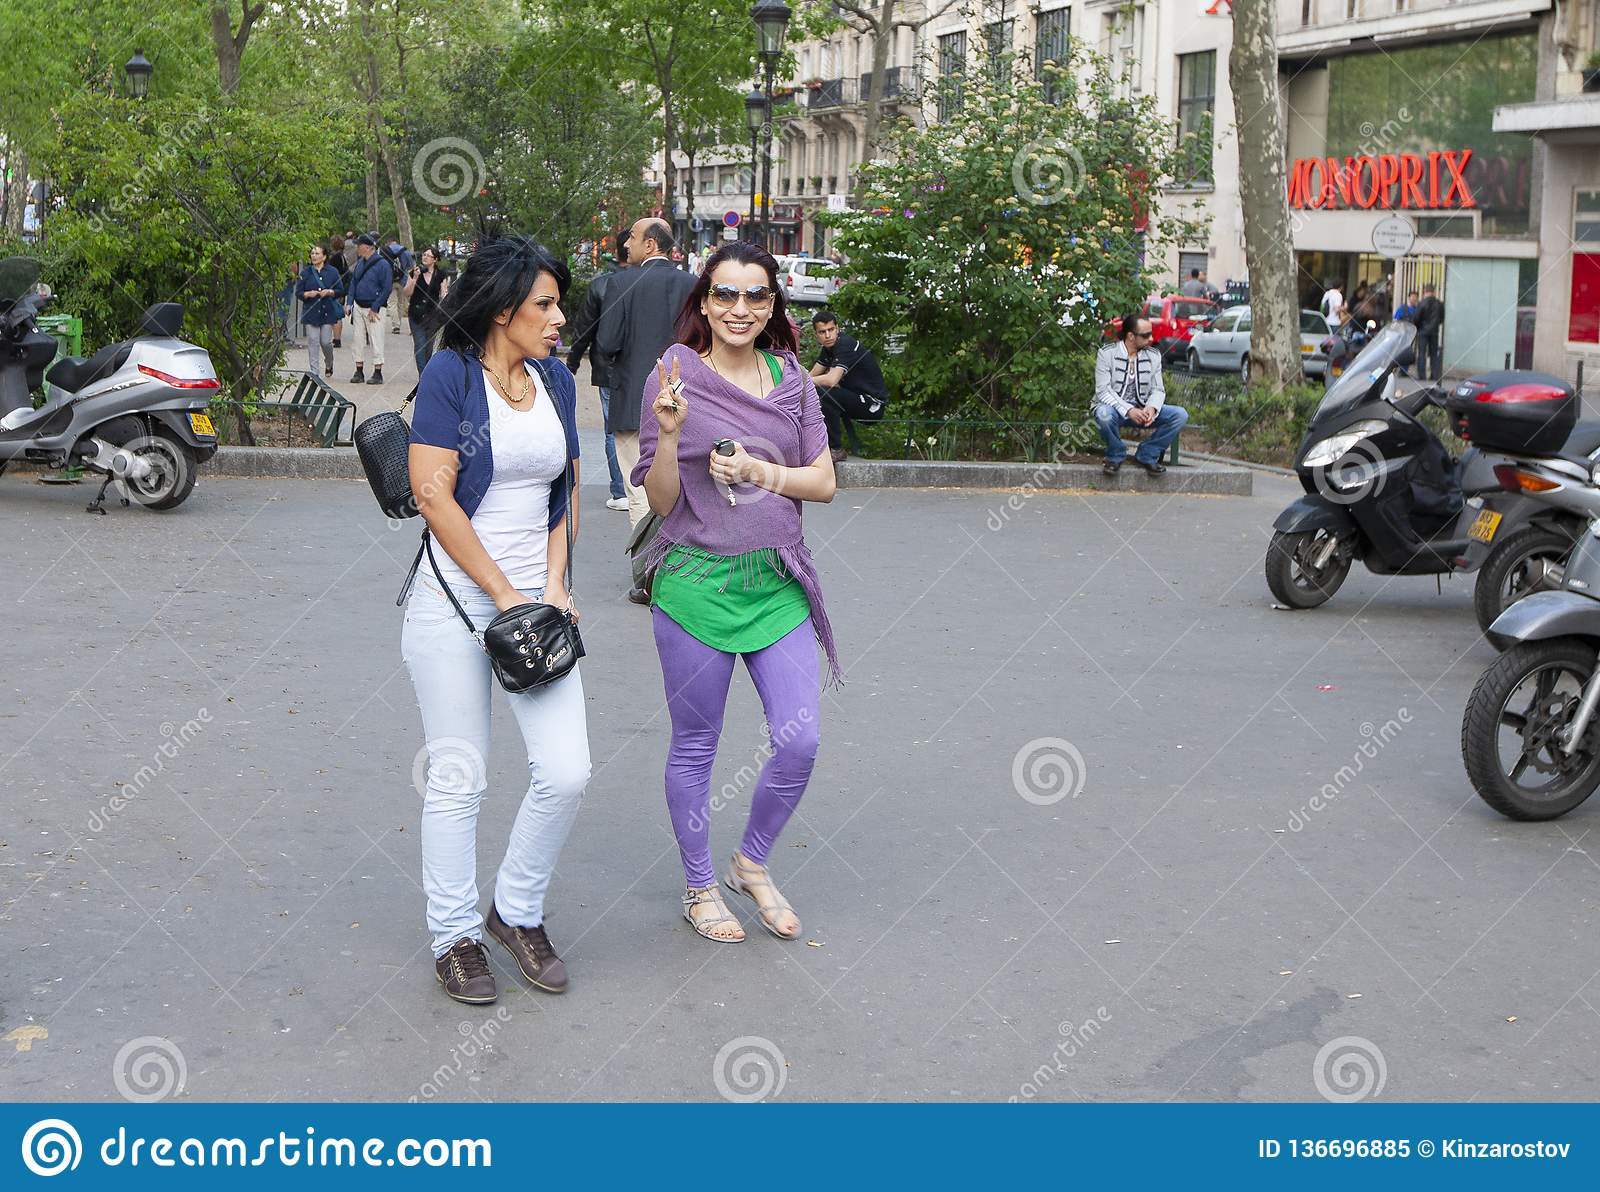 Paris, France - April 11, 2011: Two happy women are having fun together in the city